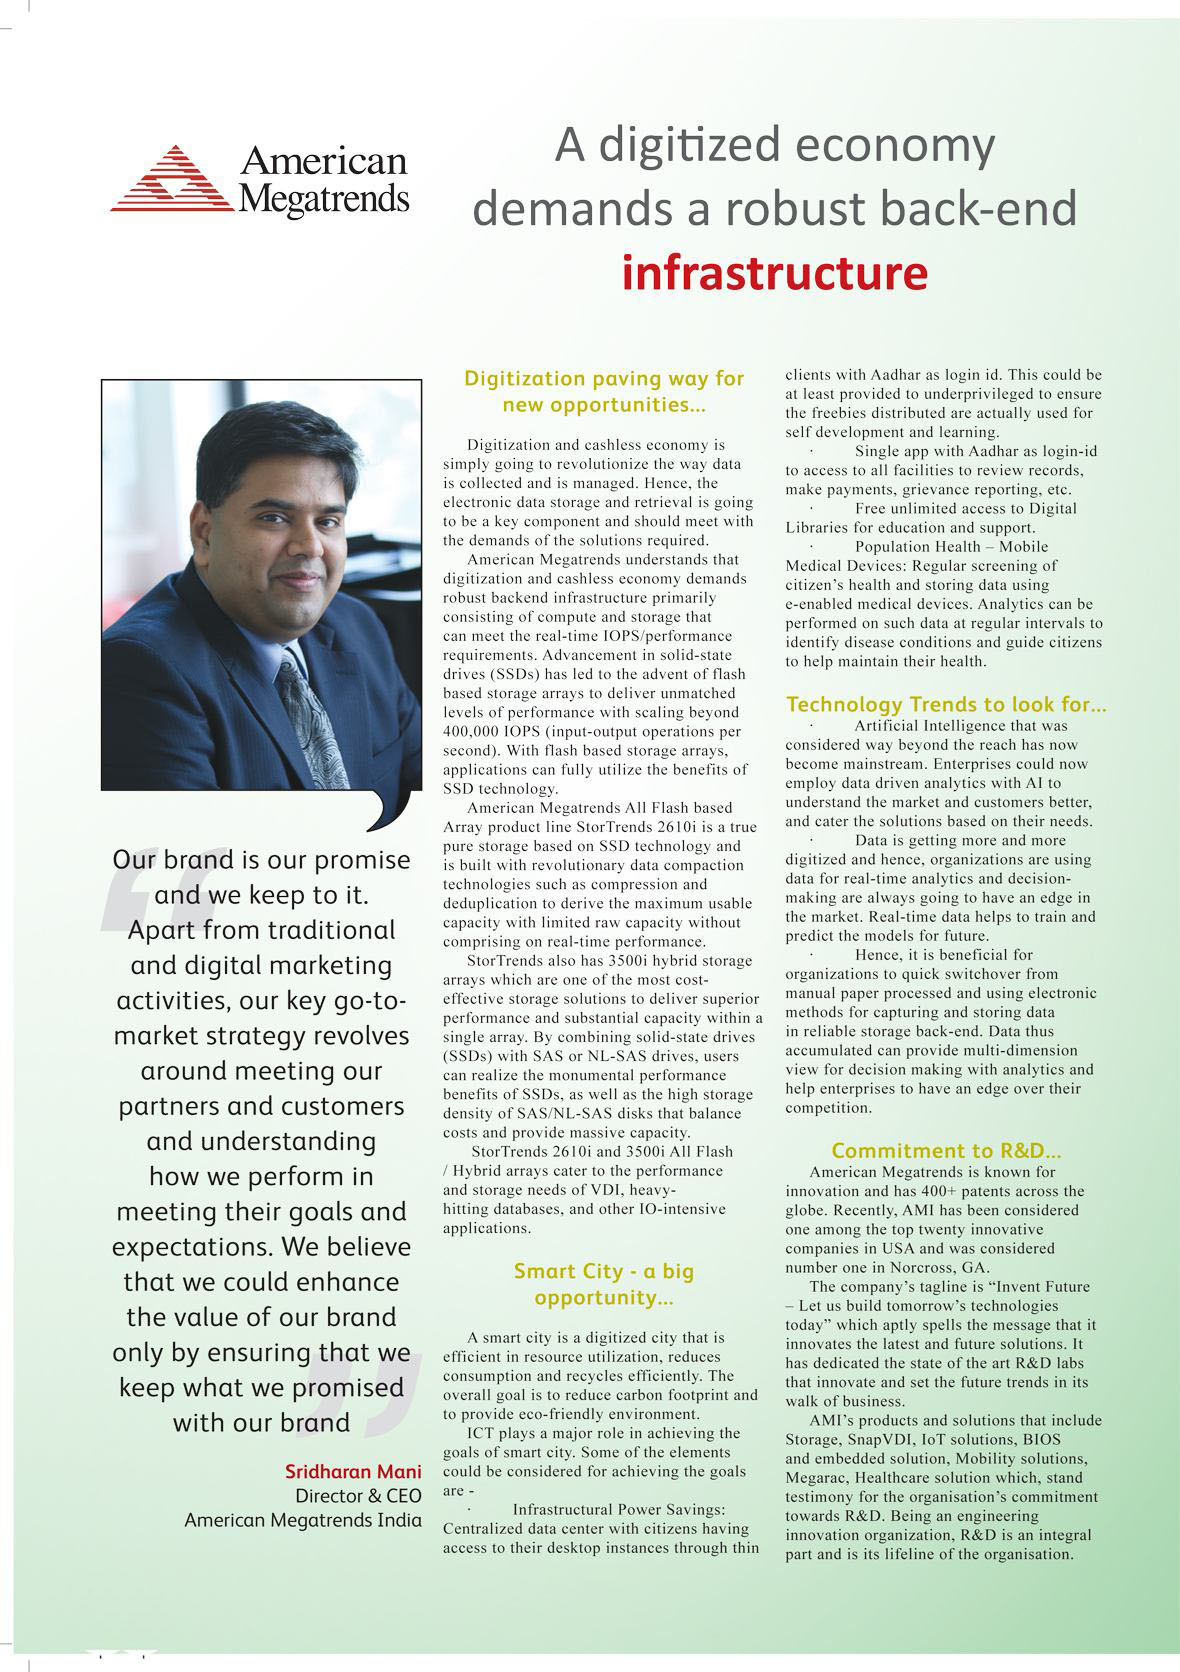 American Megatrends: A digitized economy demands a robust back-end infrastructure